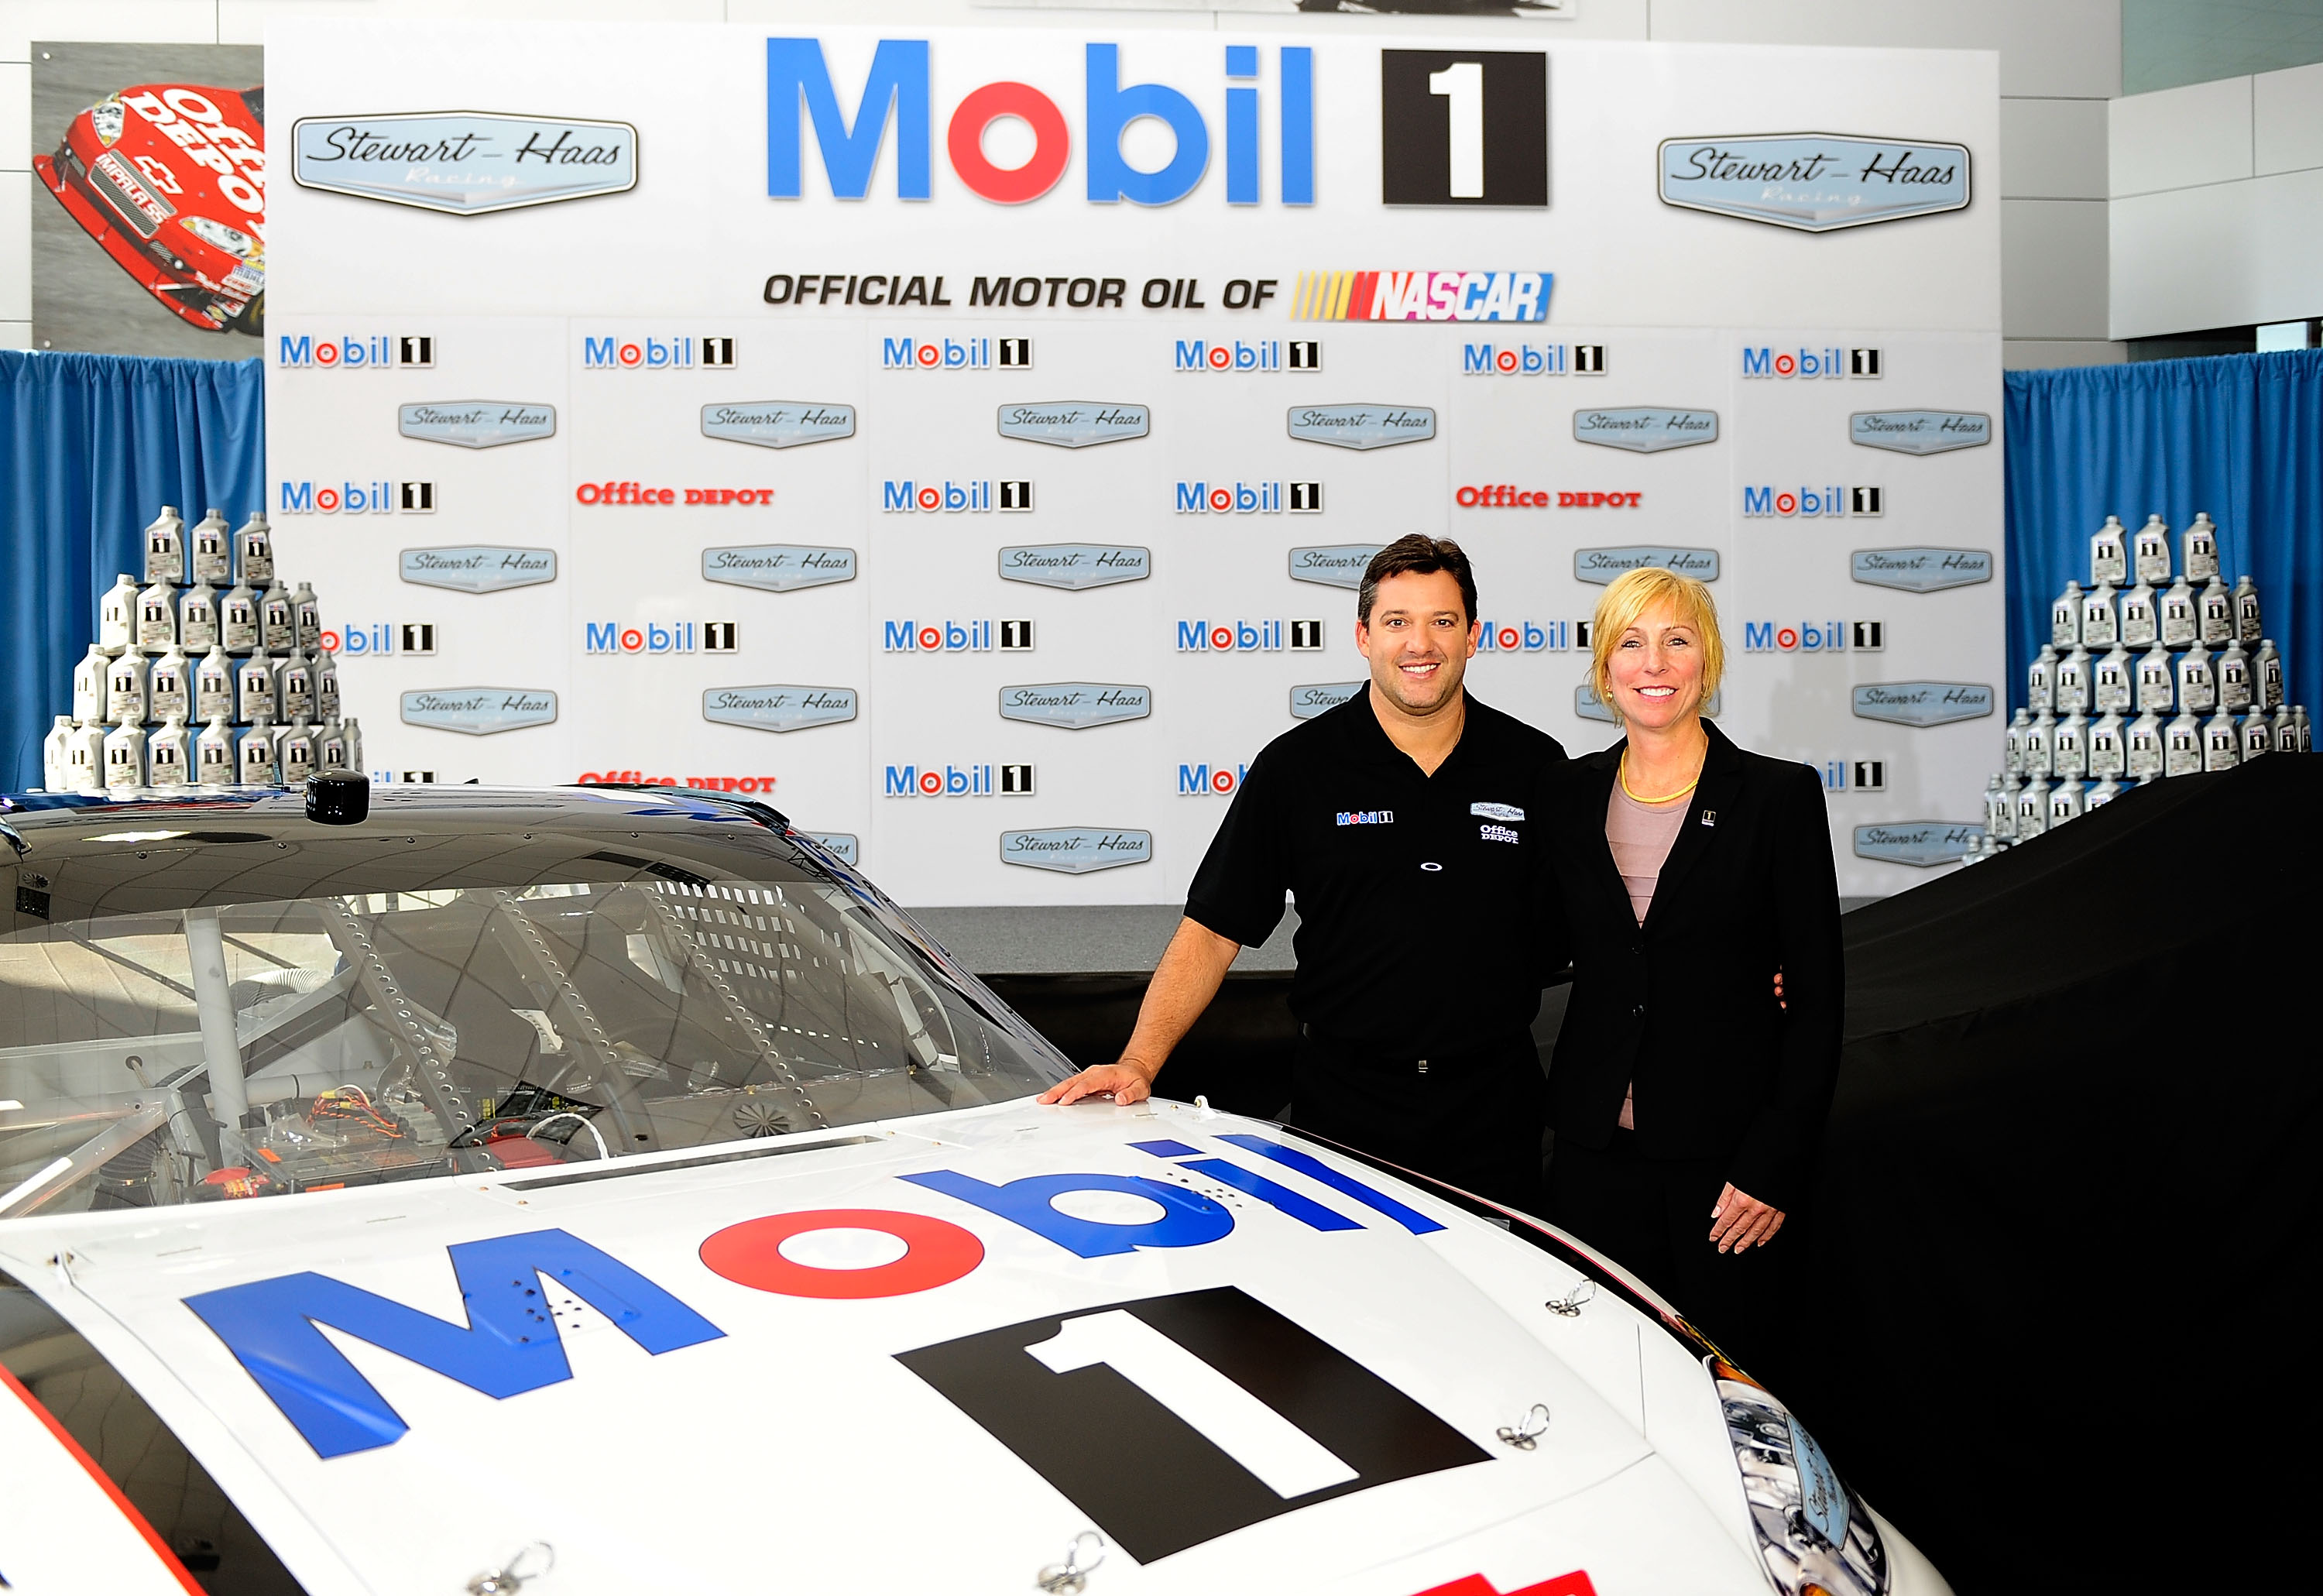 Tony Stewart resolved his 2011 sponsorship issues with the announcement of the Mobil 1 sponsorship.